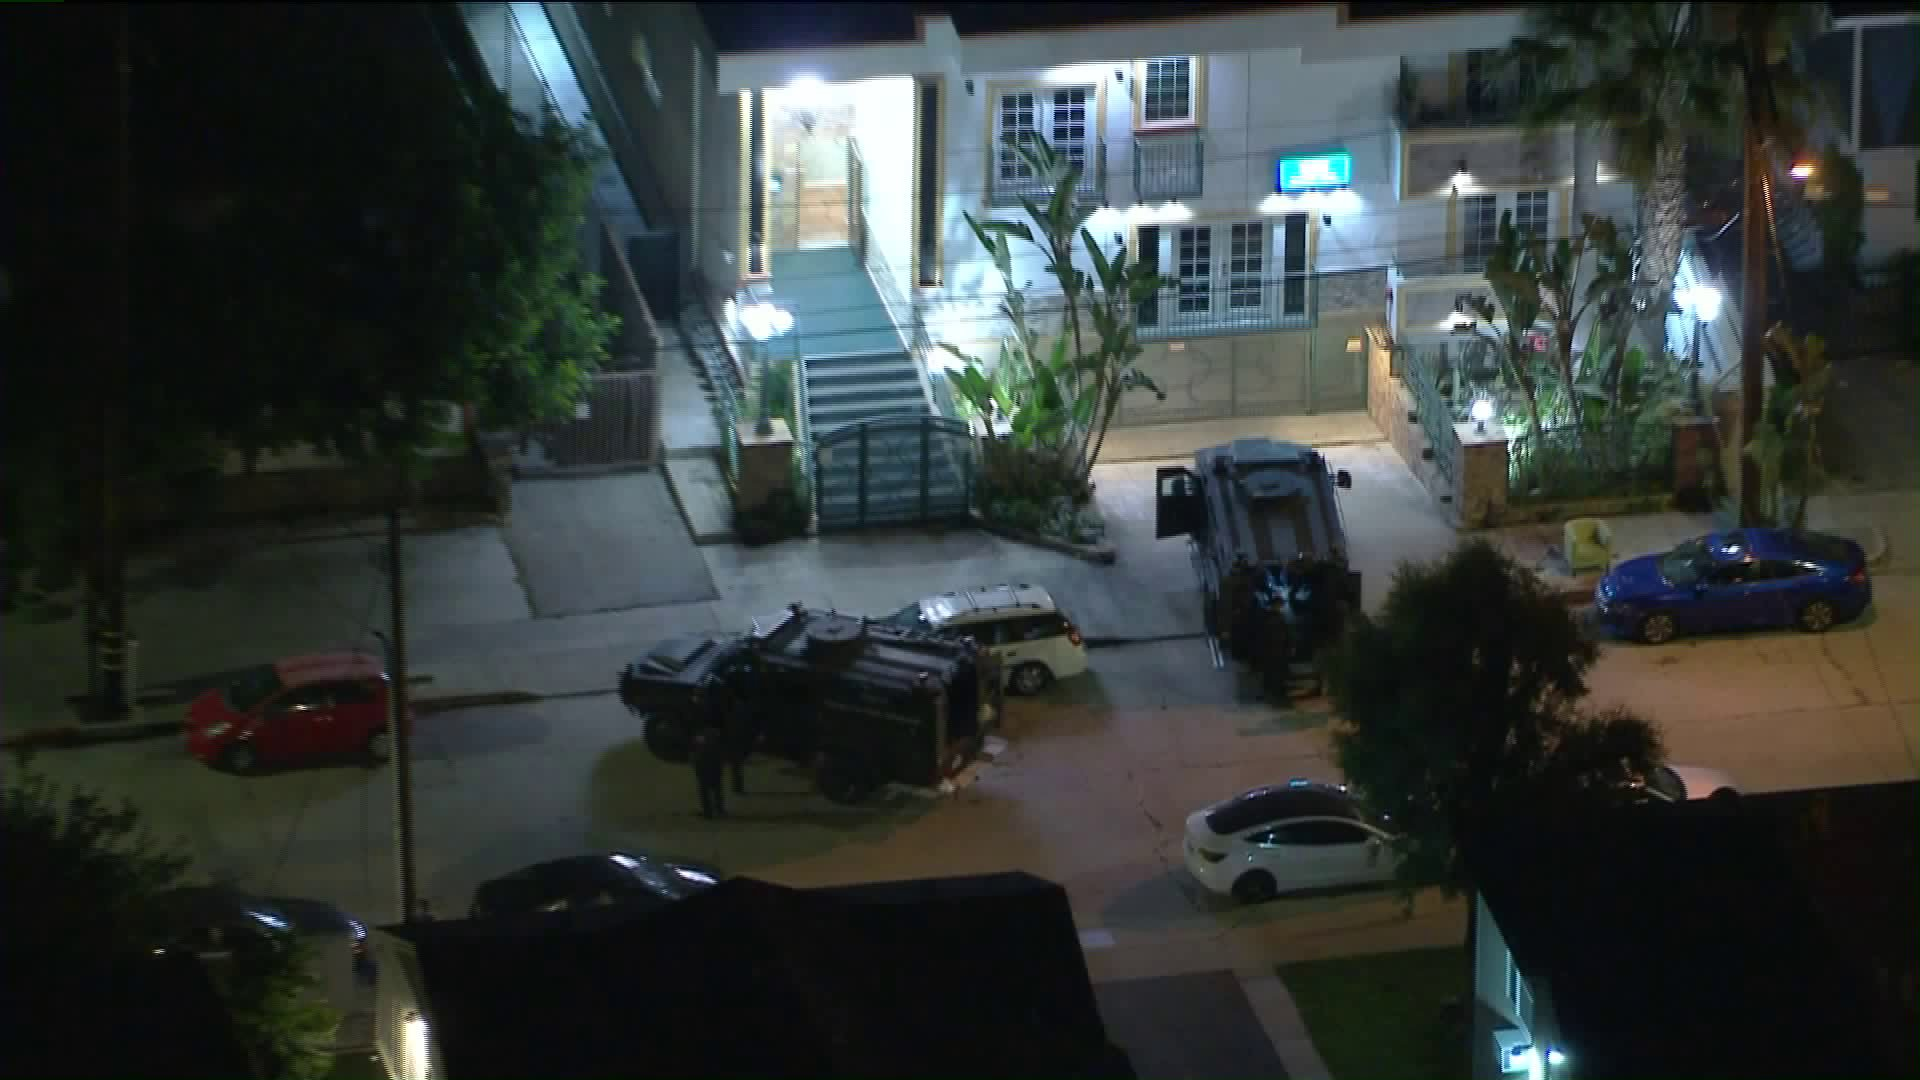 Police engage in a standoff in North Hollywood on June 7, 2020. (KTLA)